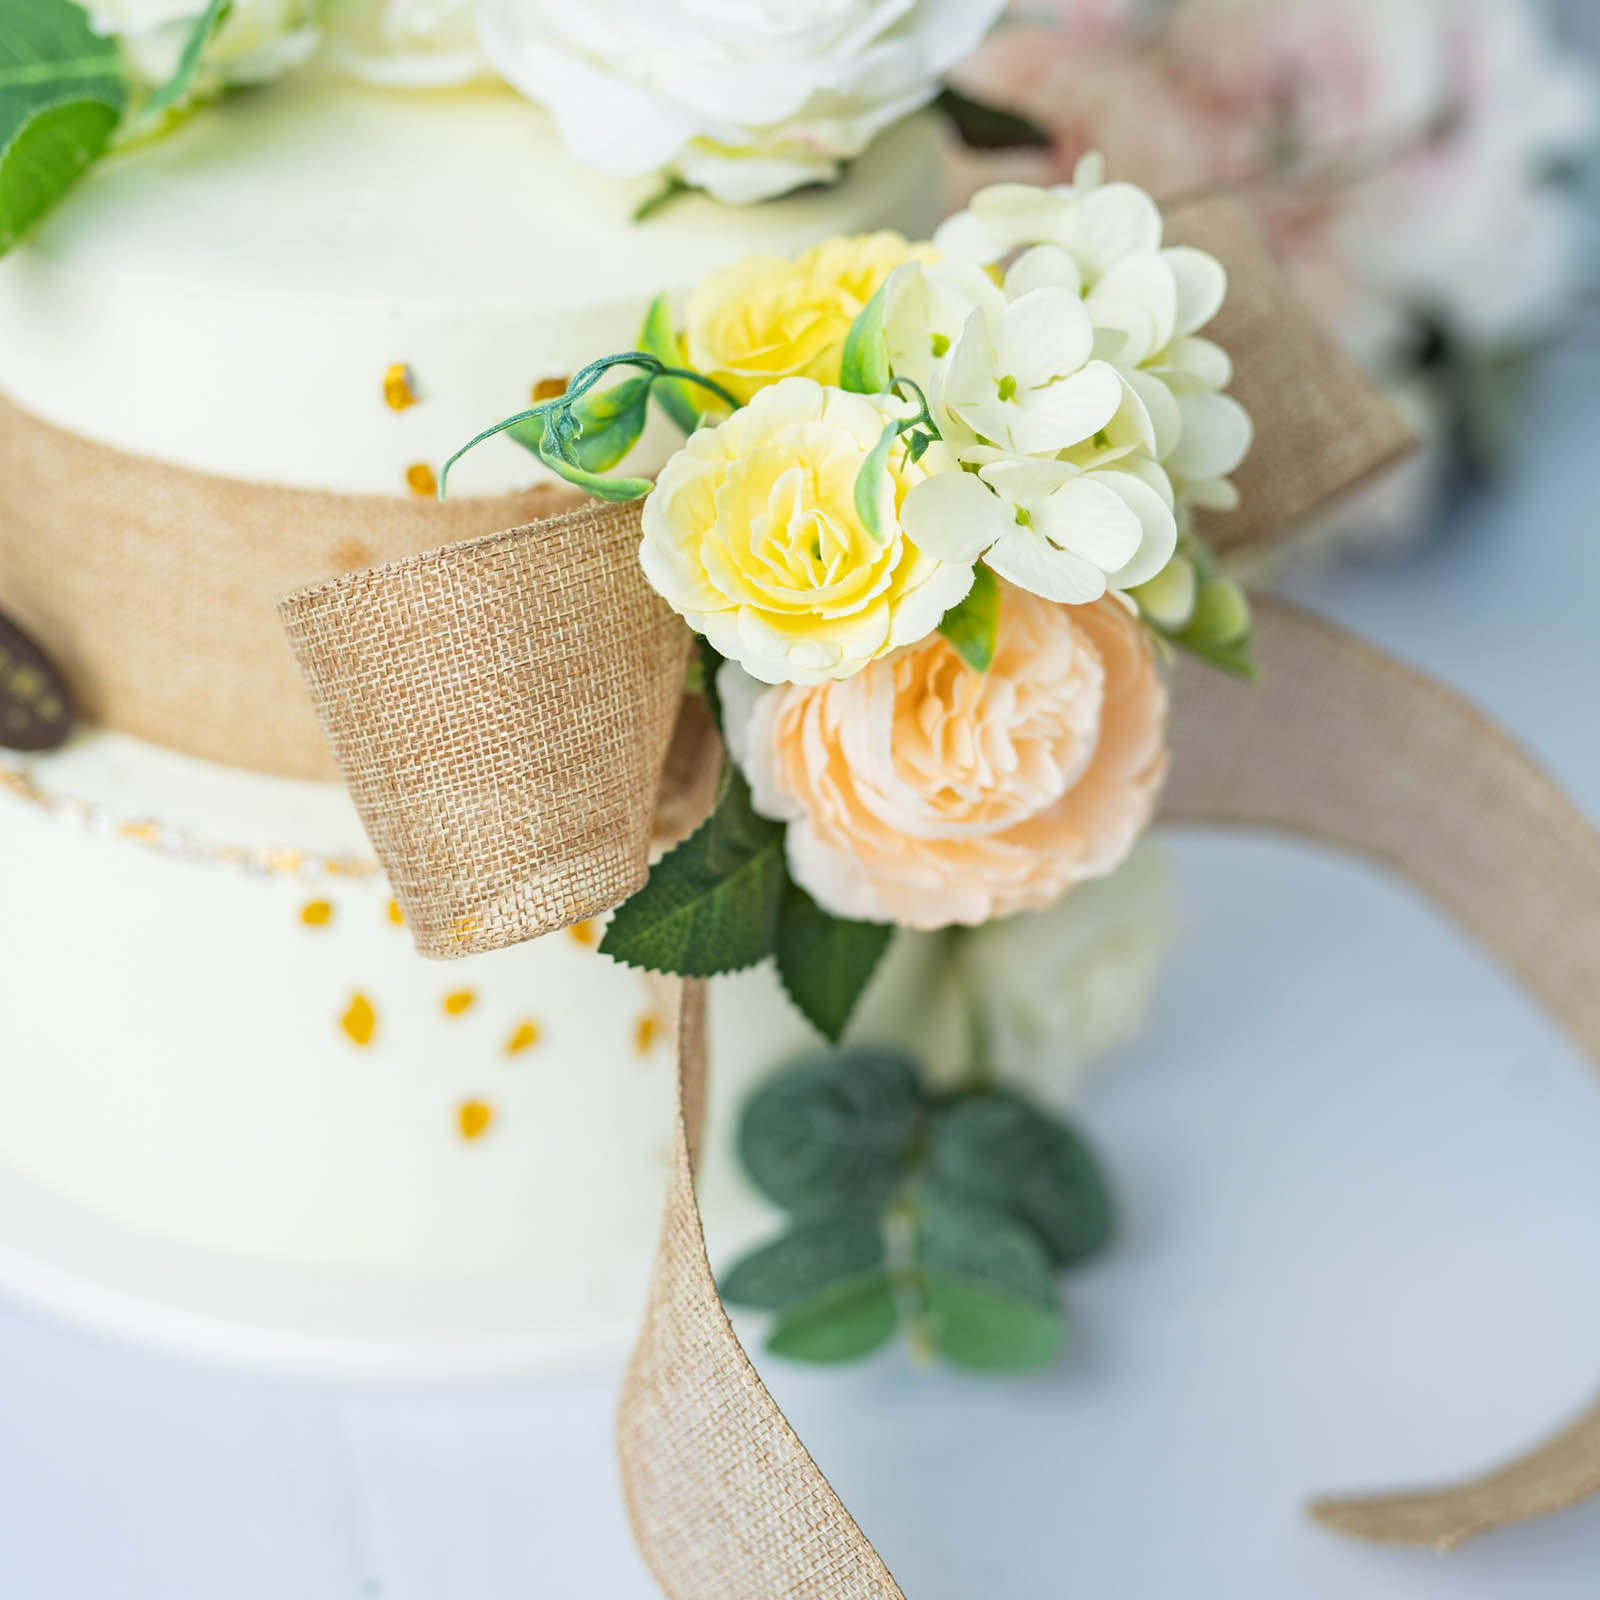 Wired Ribbon Wholesale   10 Yards Natural 2 5 Tone Wired Burlap Ribbon Wholesale